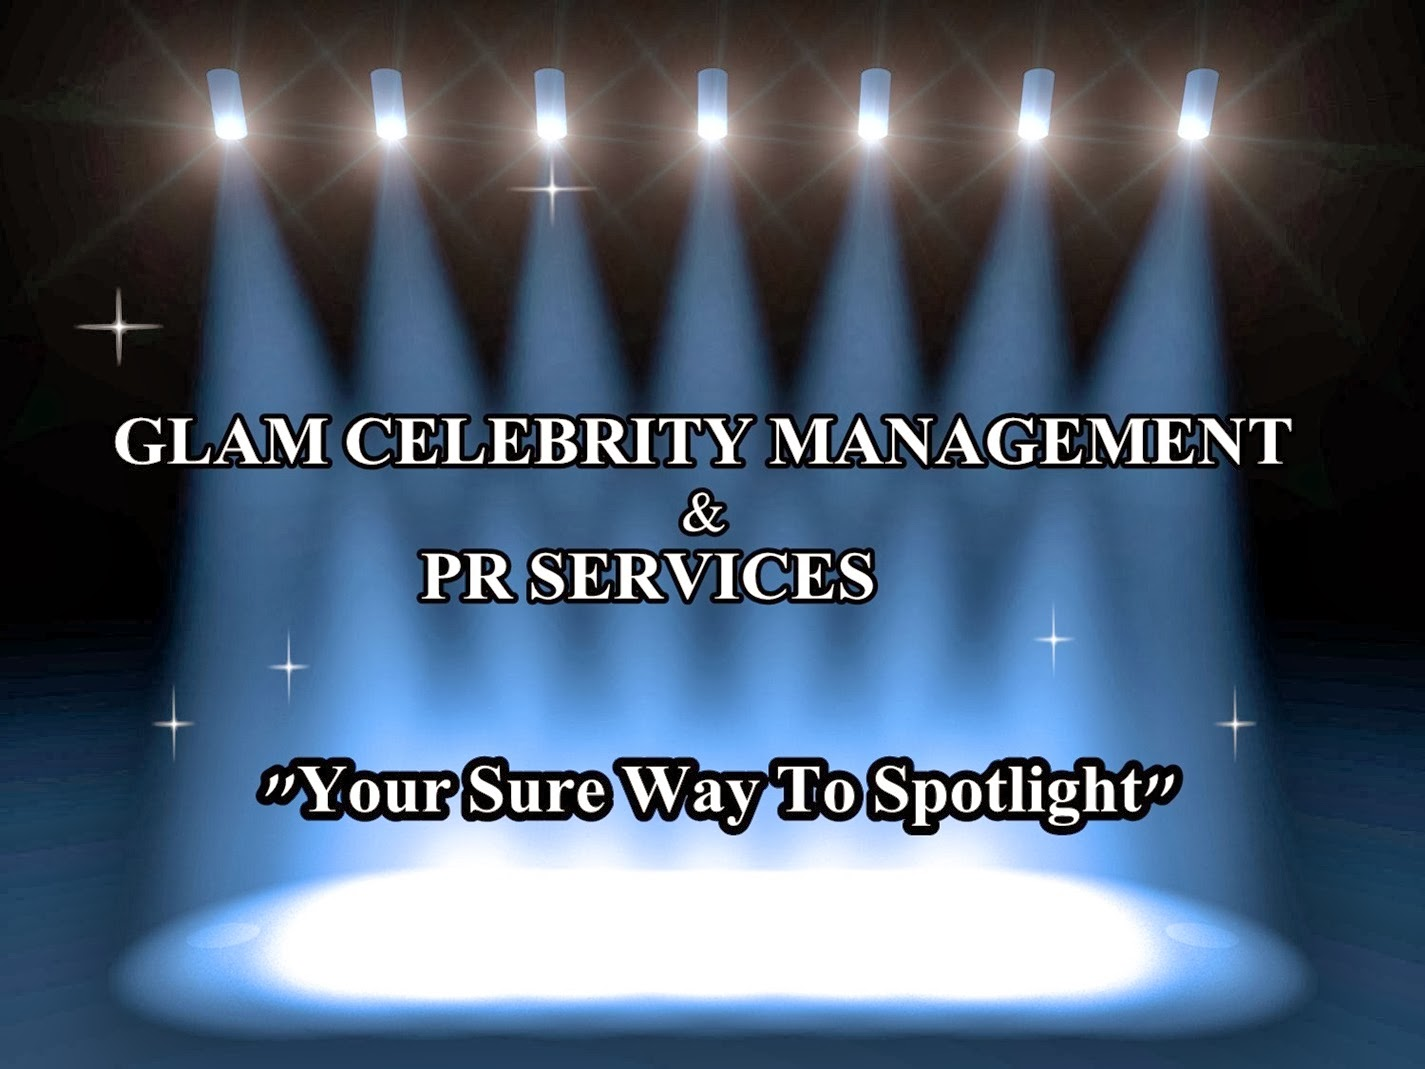 GLAM CELEBRITY MANAGEMENT & PR SERVICES